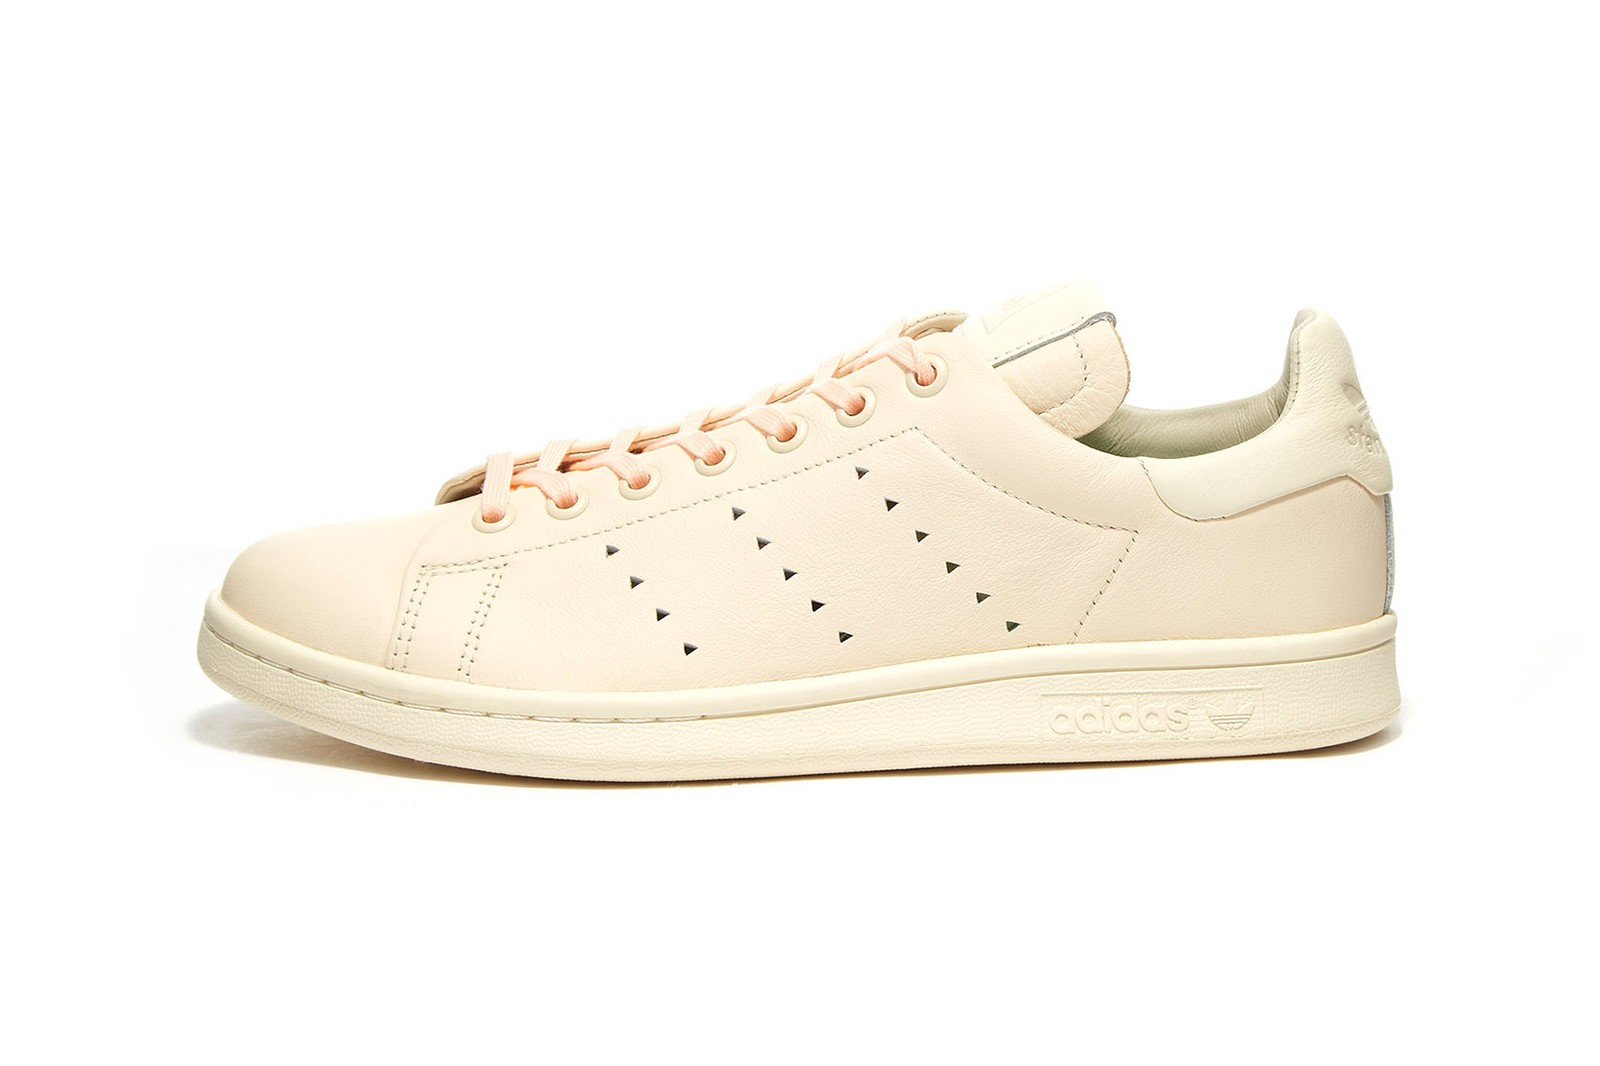 Pharrell Williams x adidas Originals Stan Smith Ecru Tint